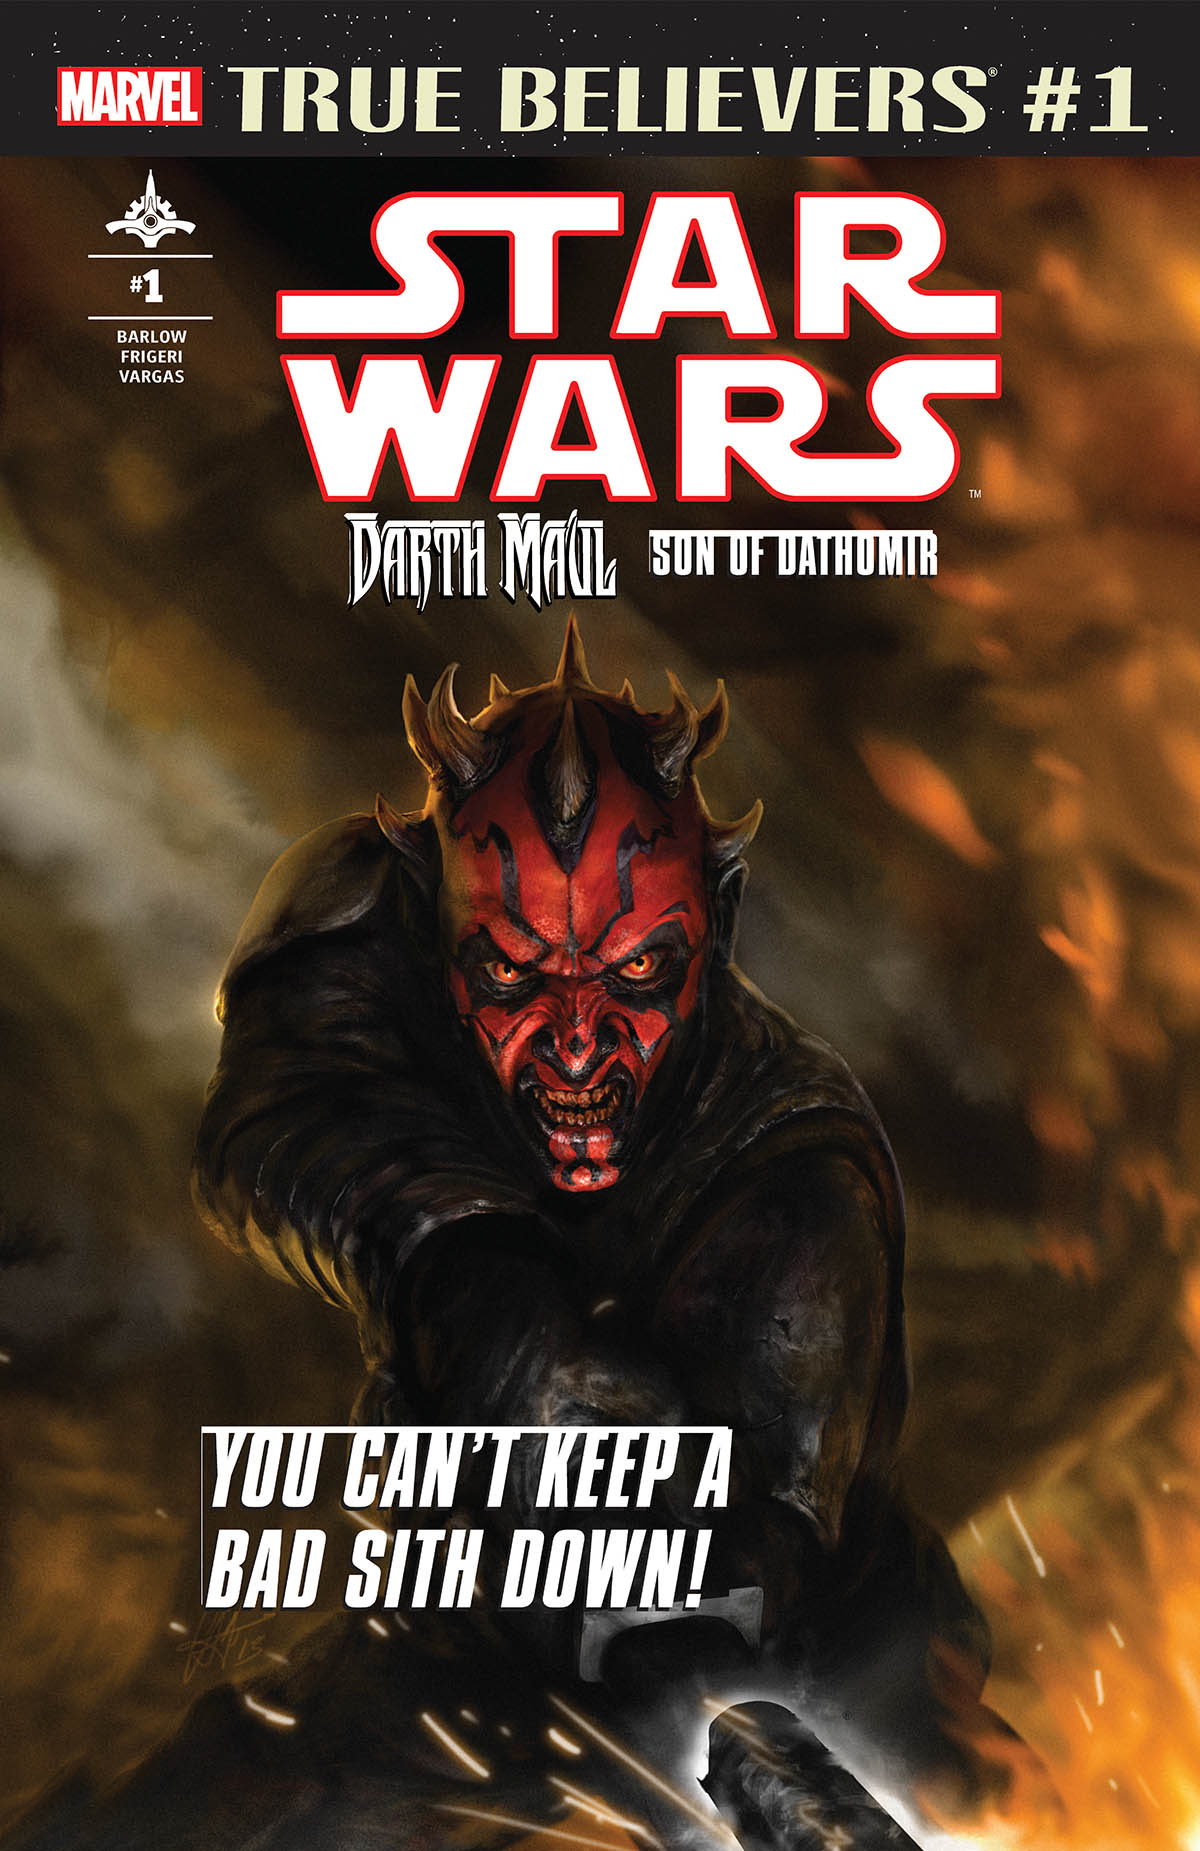 TRUE BELIEVERS STAR WARS DARTH MAUL #1 + 1 Adet Yerli Karton ve Poşet